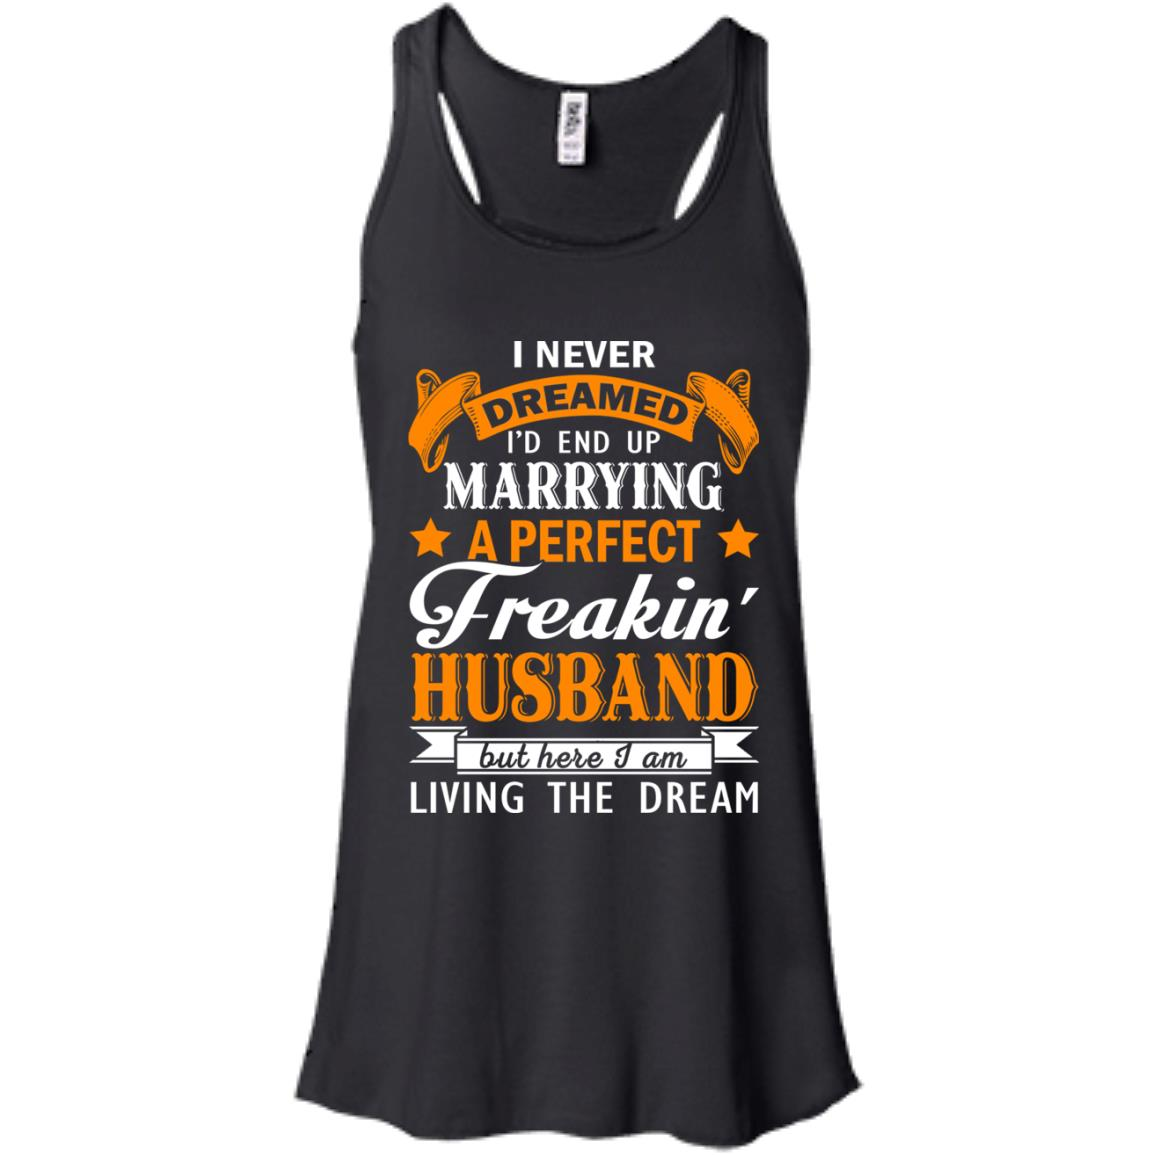 image 1840px I never dreamed I'd end up marrying a perfect freaking husband t shirts, hoodies, tank